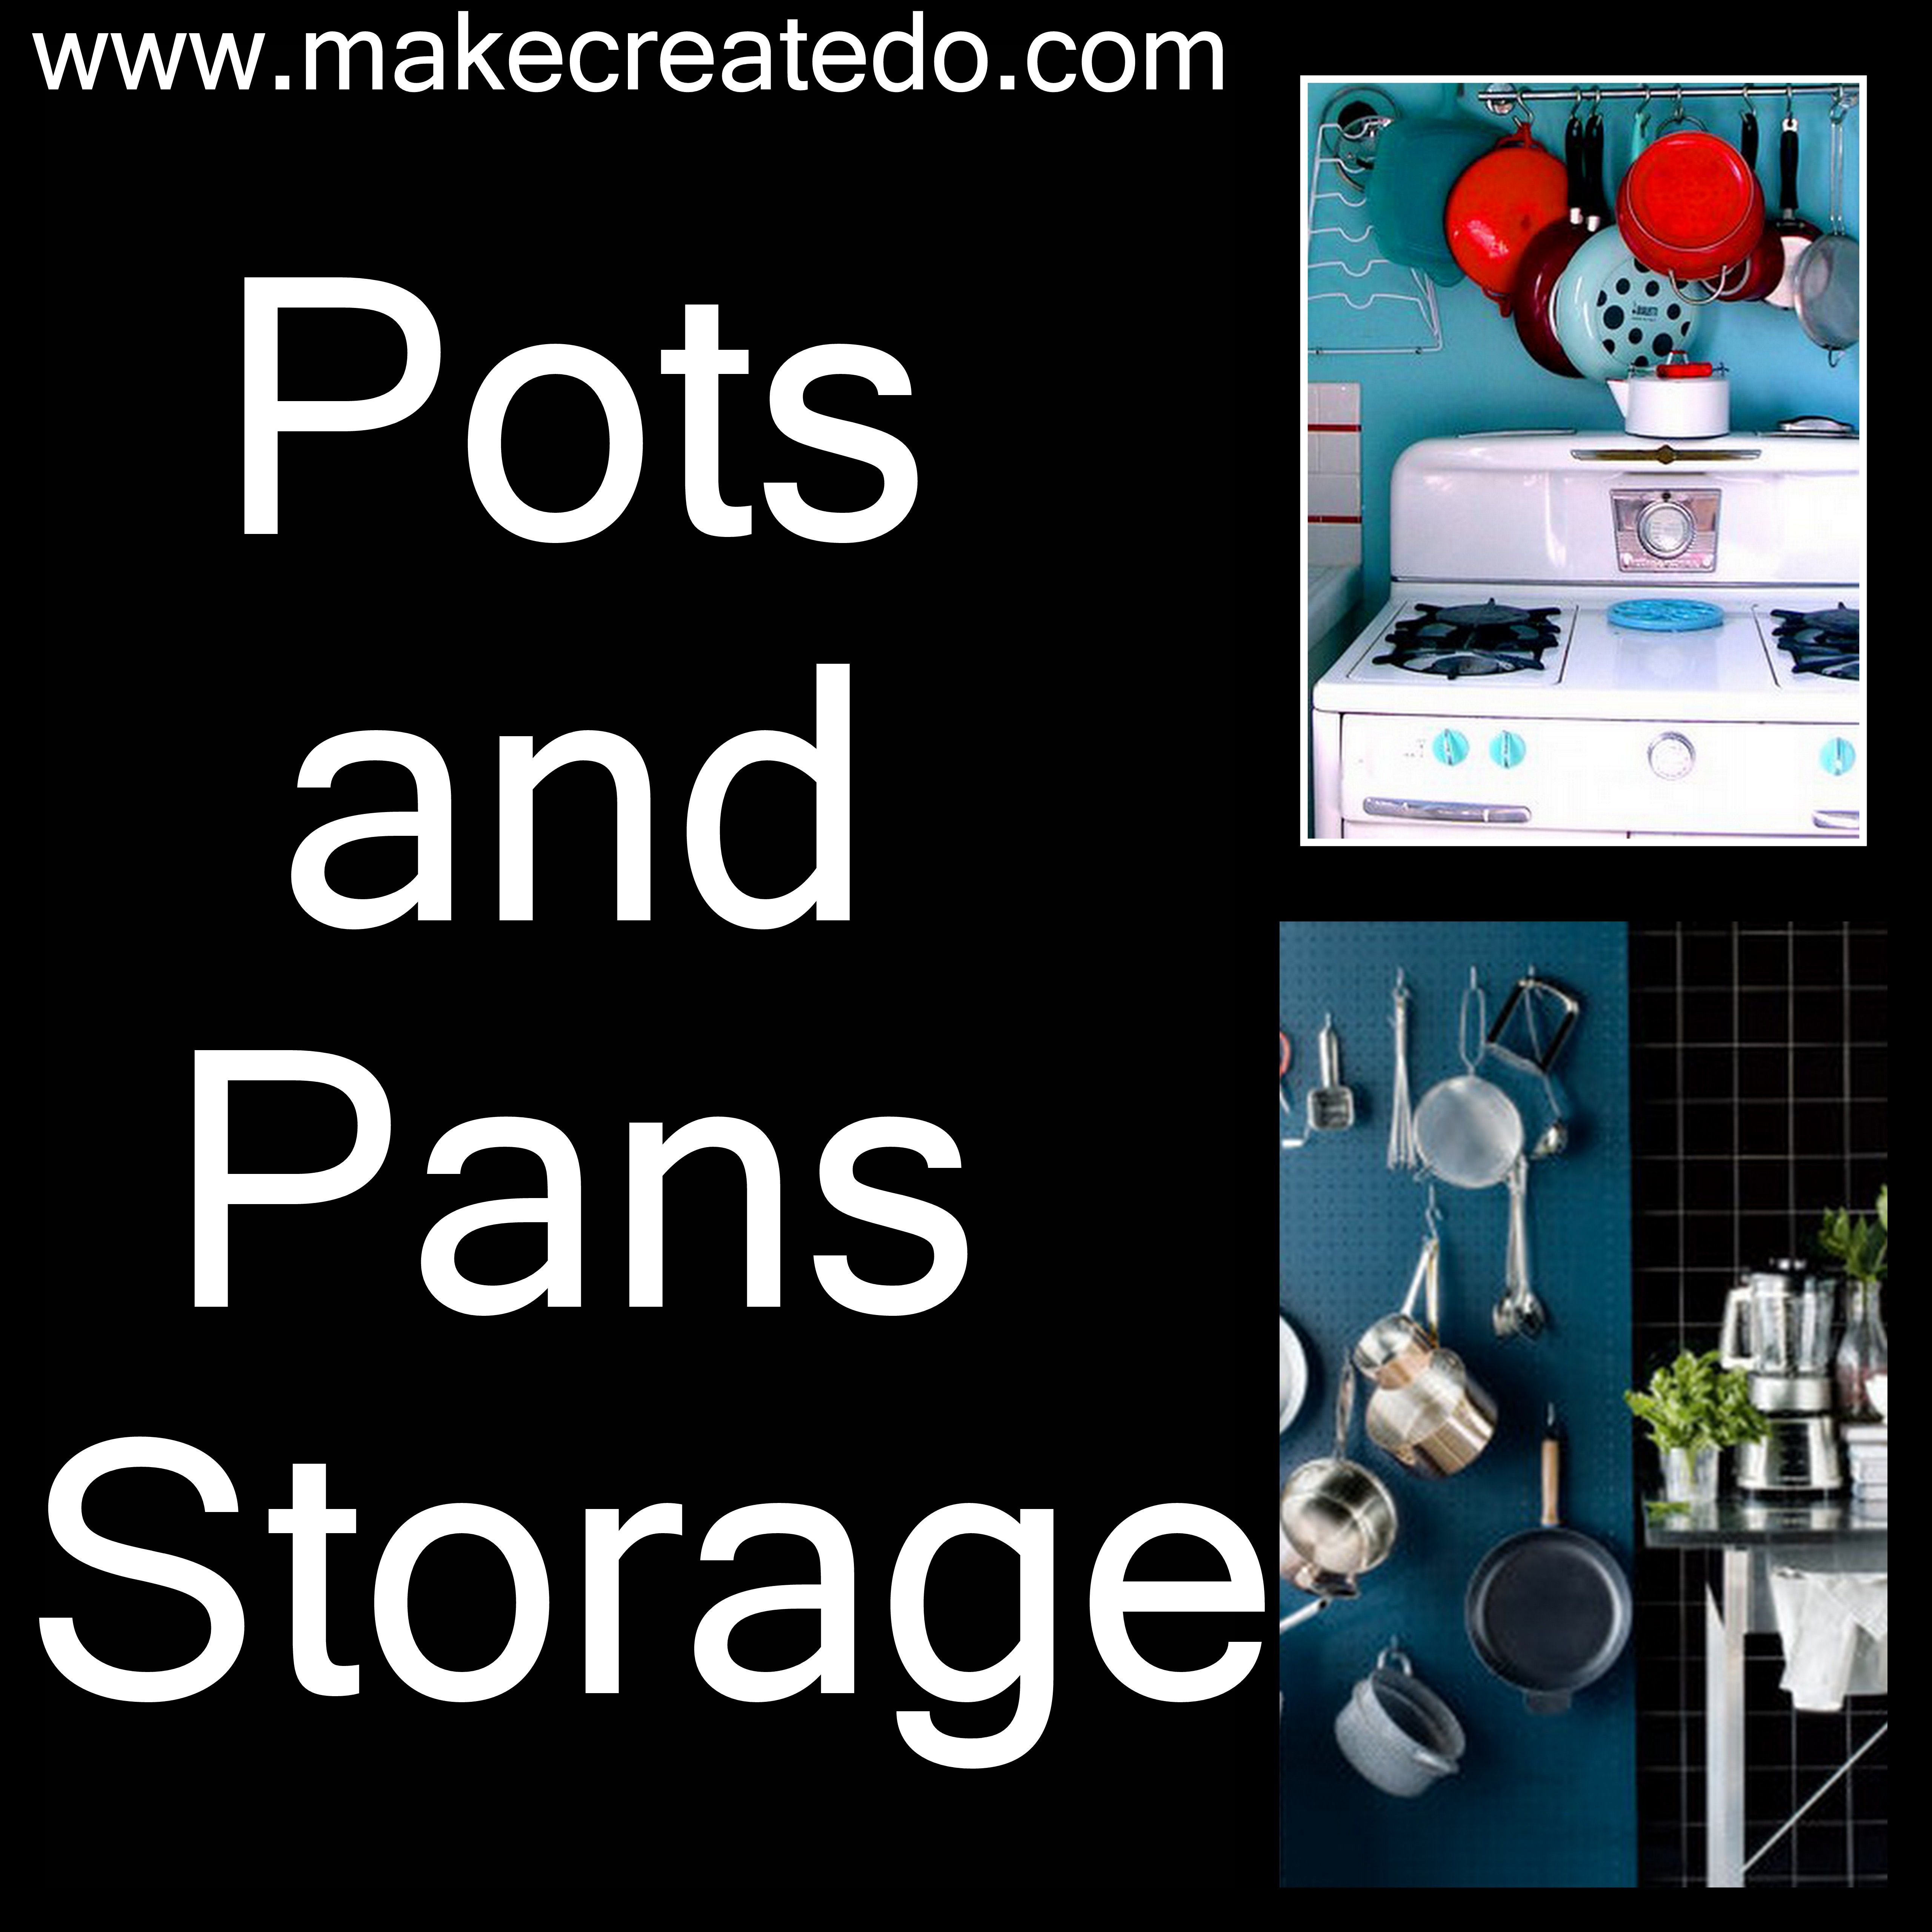 Repurposed Pallet Ideas | pots and pans organizing and storage ideas and inspiration  sc 1 st  Pinterest & Repurposed Pallet Ideas | pots and pans organizing and storage ideas ...